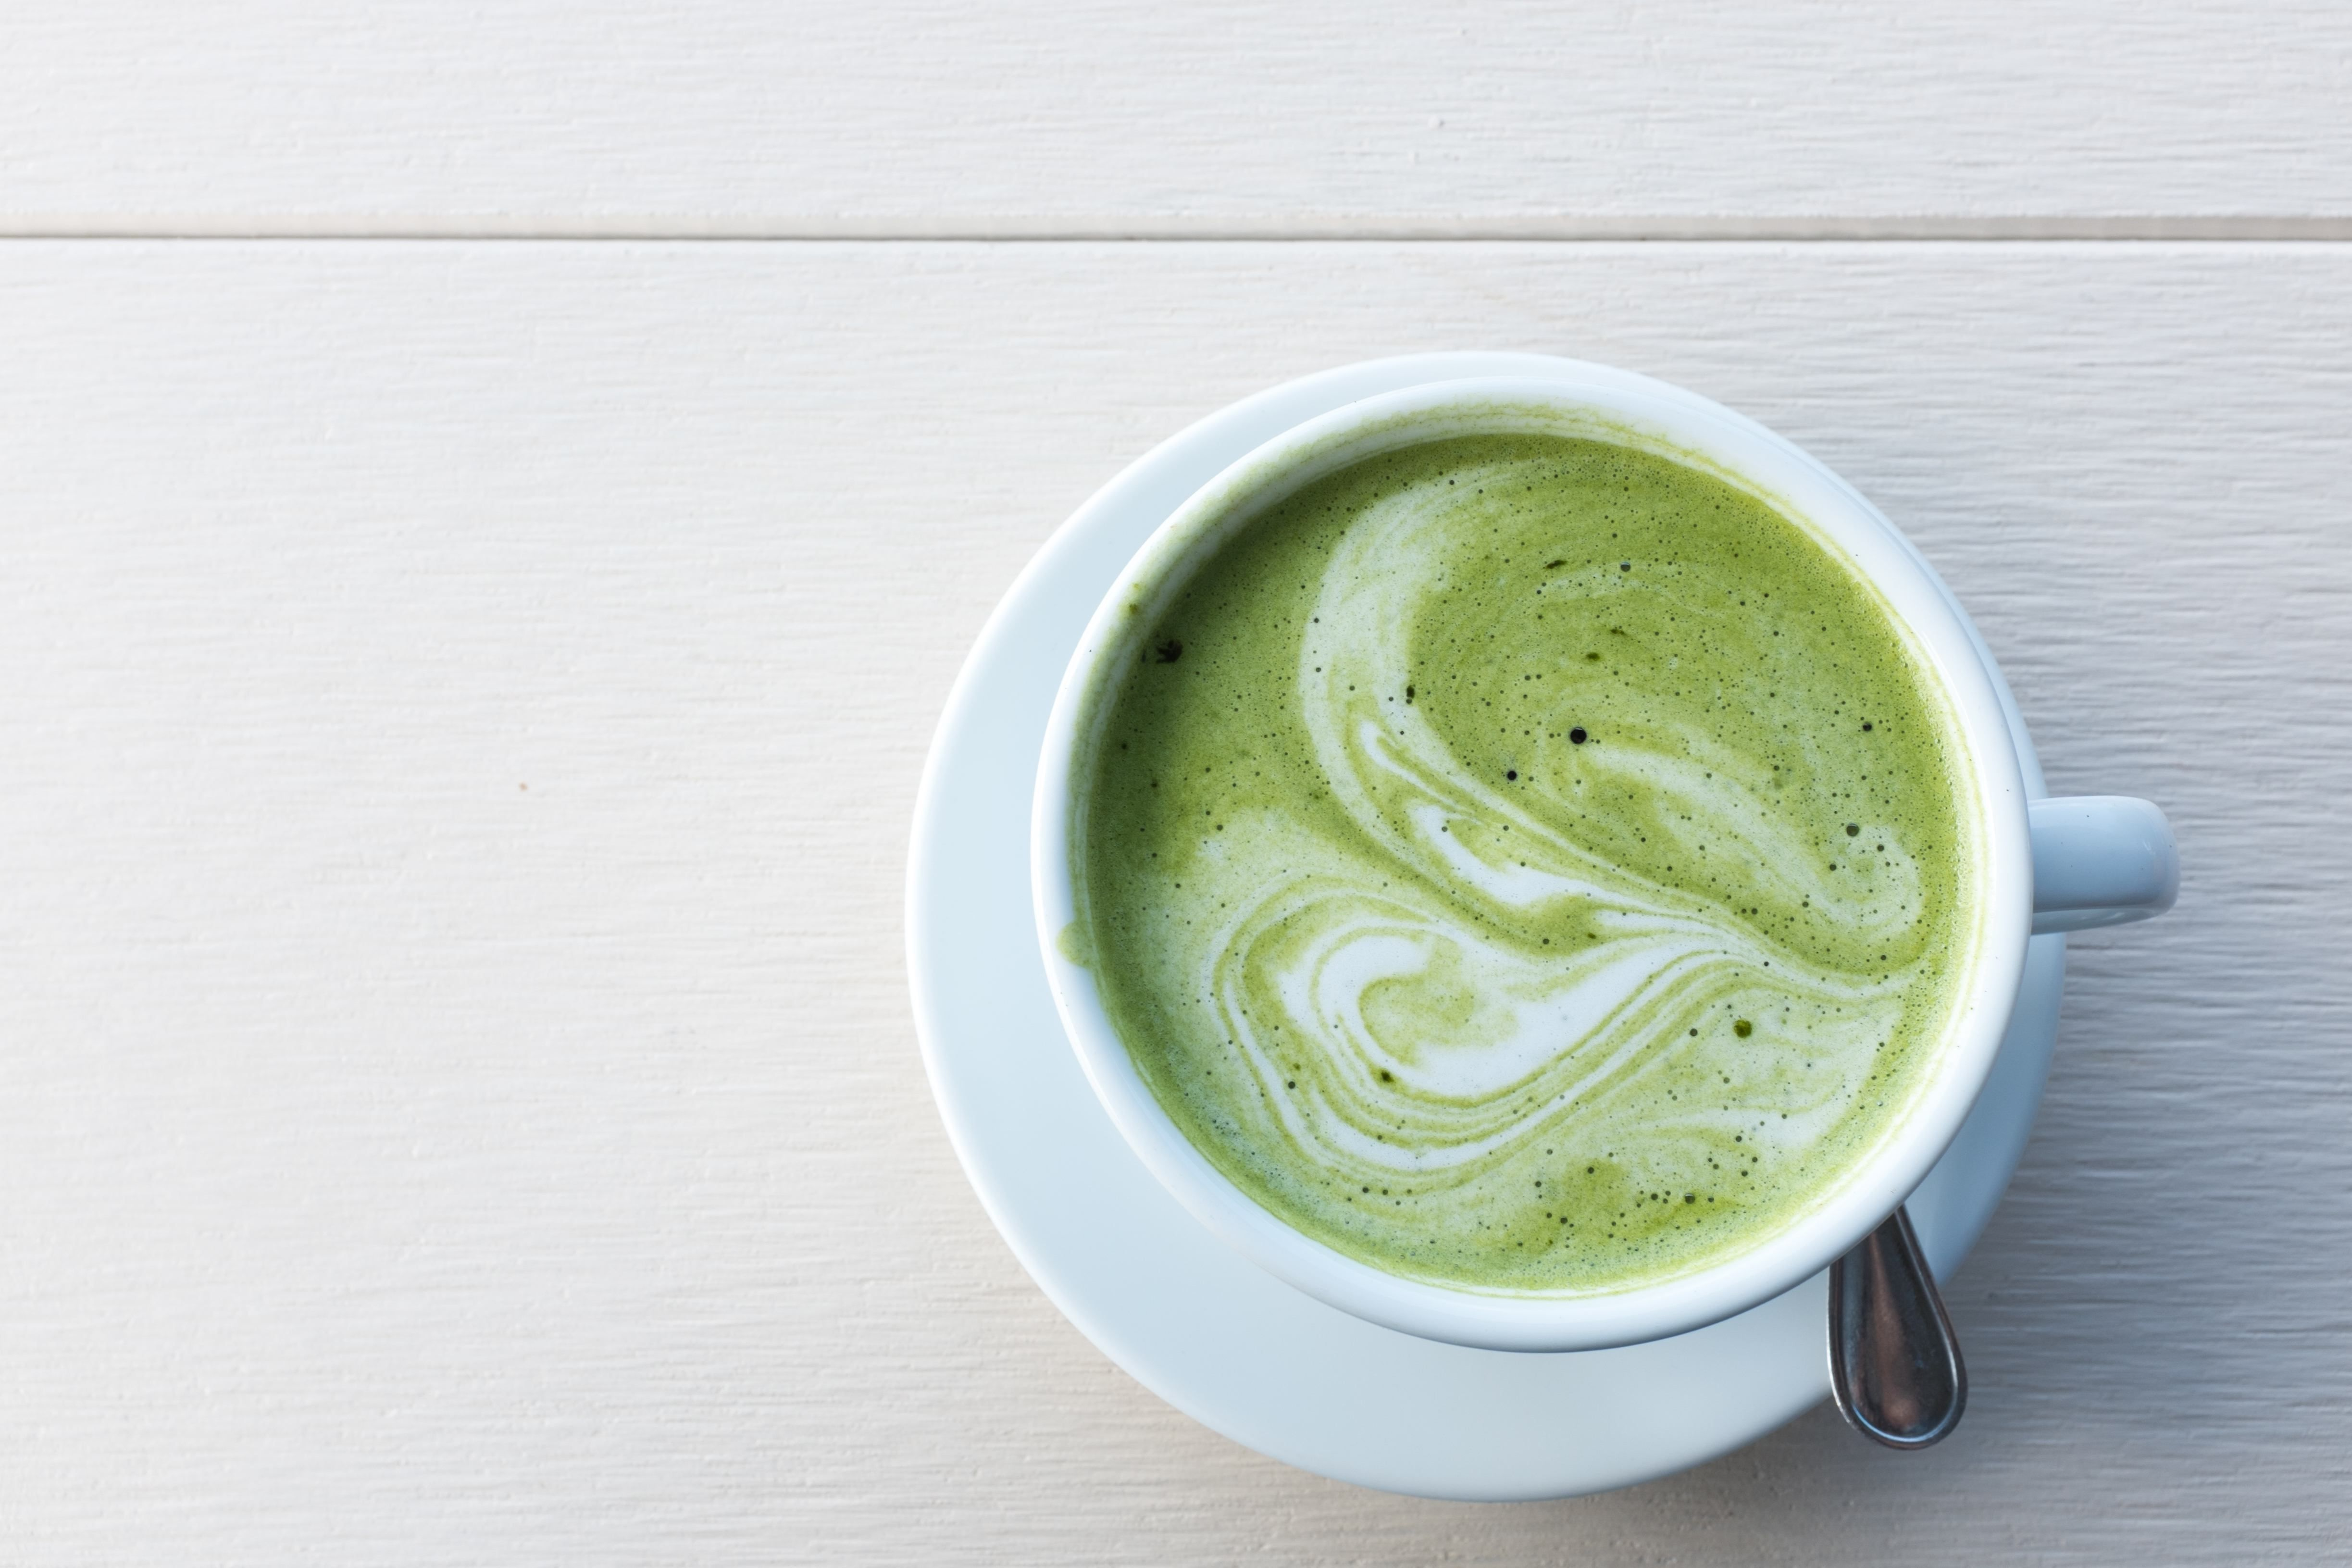 Starbucks Matcha Isn't As Healthy As You Think It Is